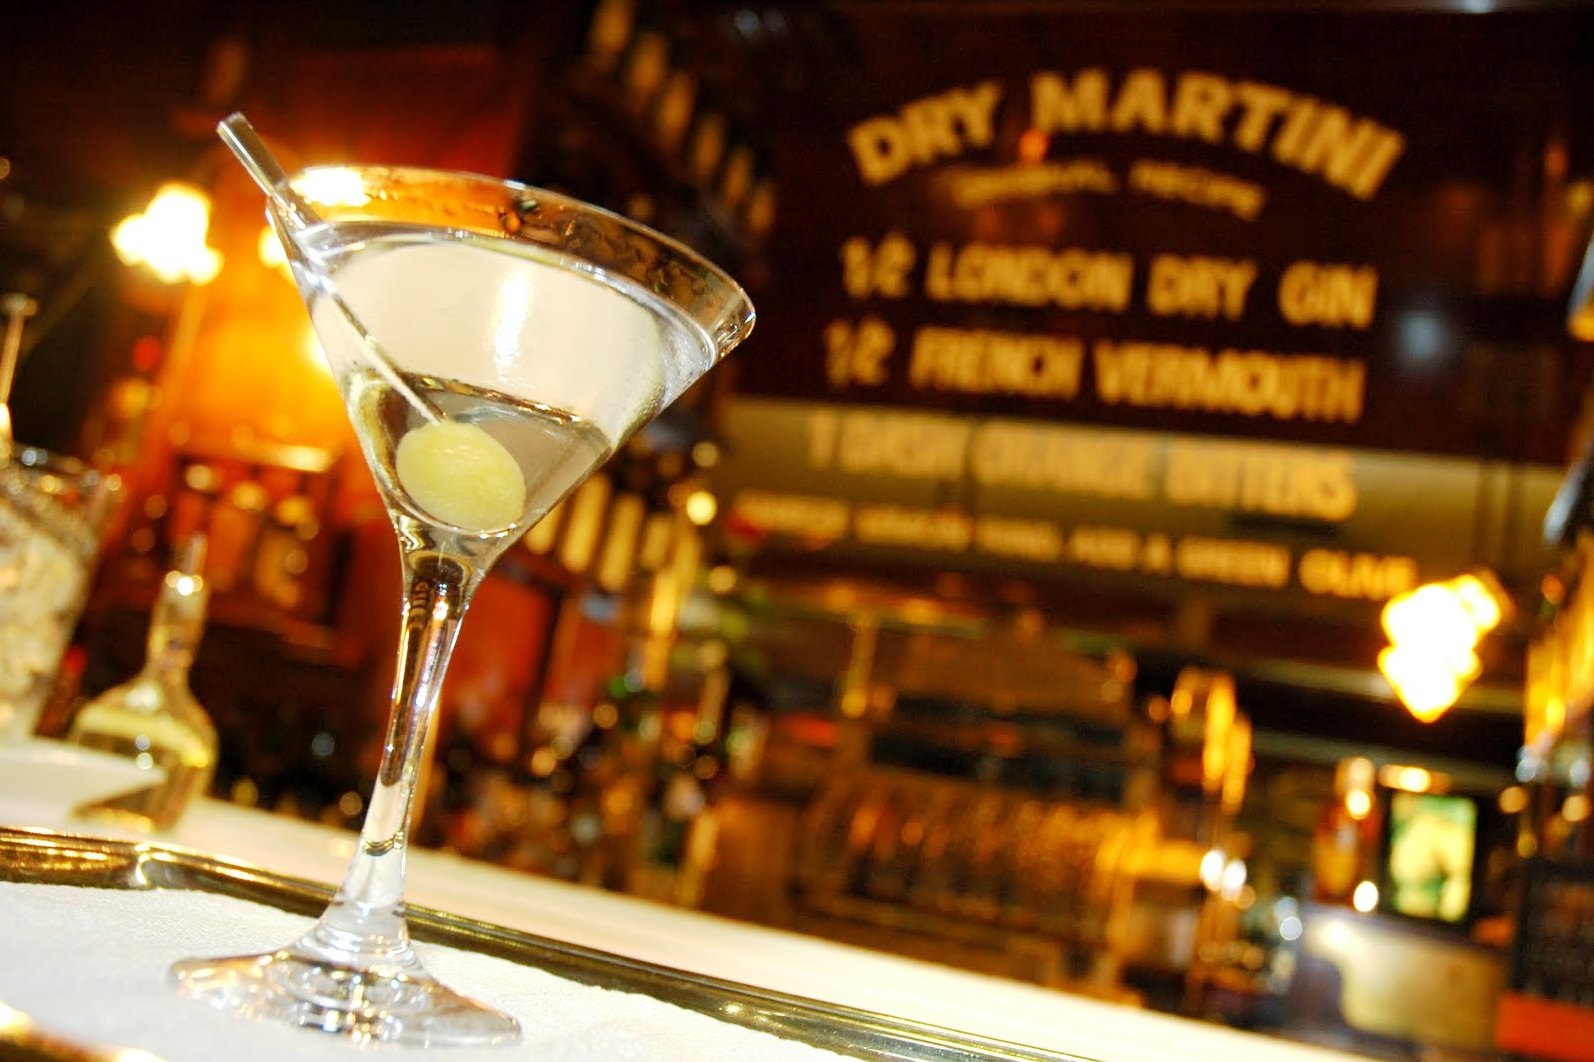 Dry Martini, 50 best bars of the world.